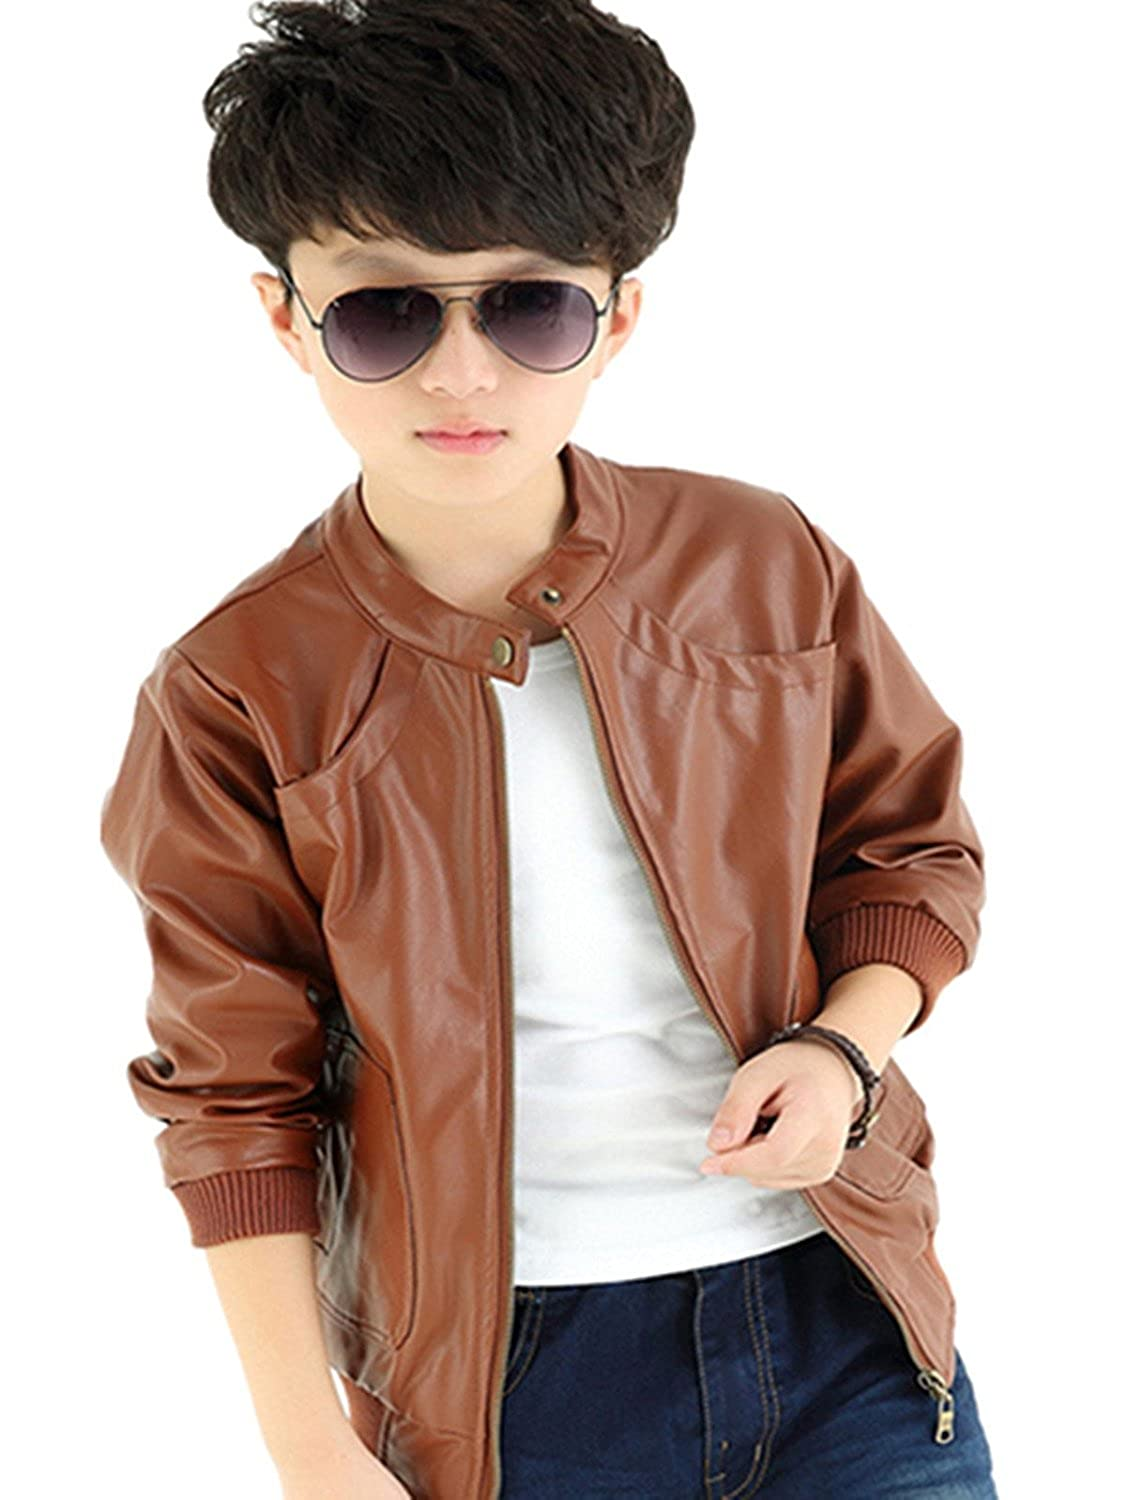 FOUNDO Boy's Trendy Stand-Collar PU Leather Jacket Moto Jacket Coat (2T-12T)